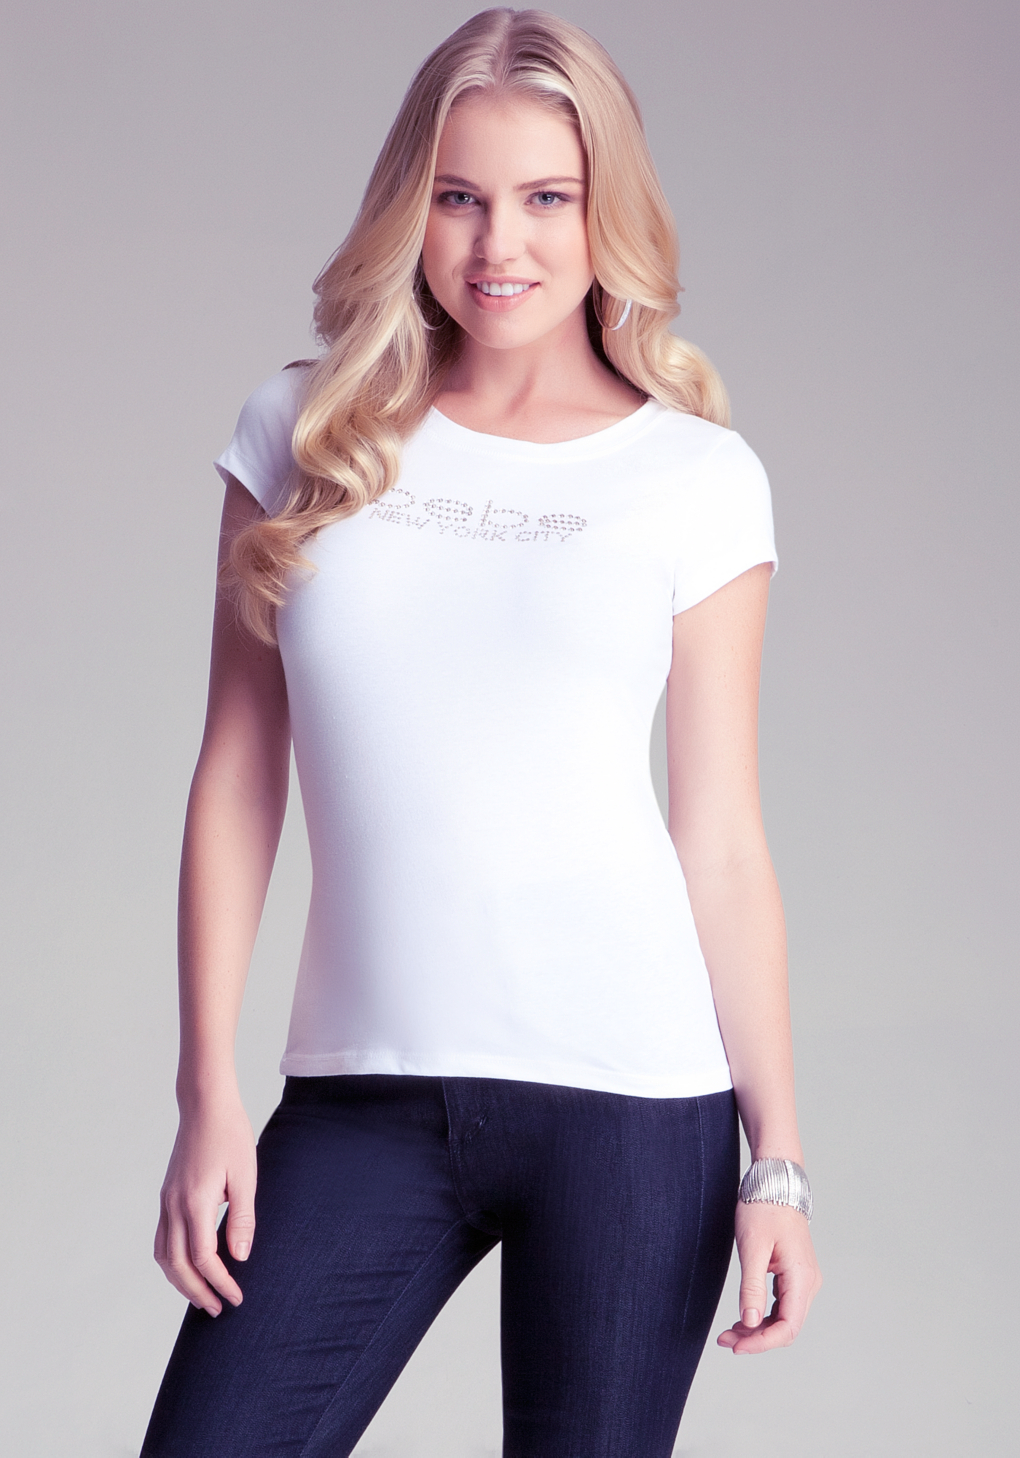 The collection of Bebe t-shirts features a variety of designs from scoop-neck t-shirts to logo-detail t-shirts in a range of bold and bright colors ideal for refreshing your casualwear line .